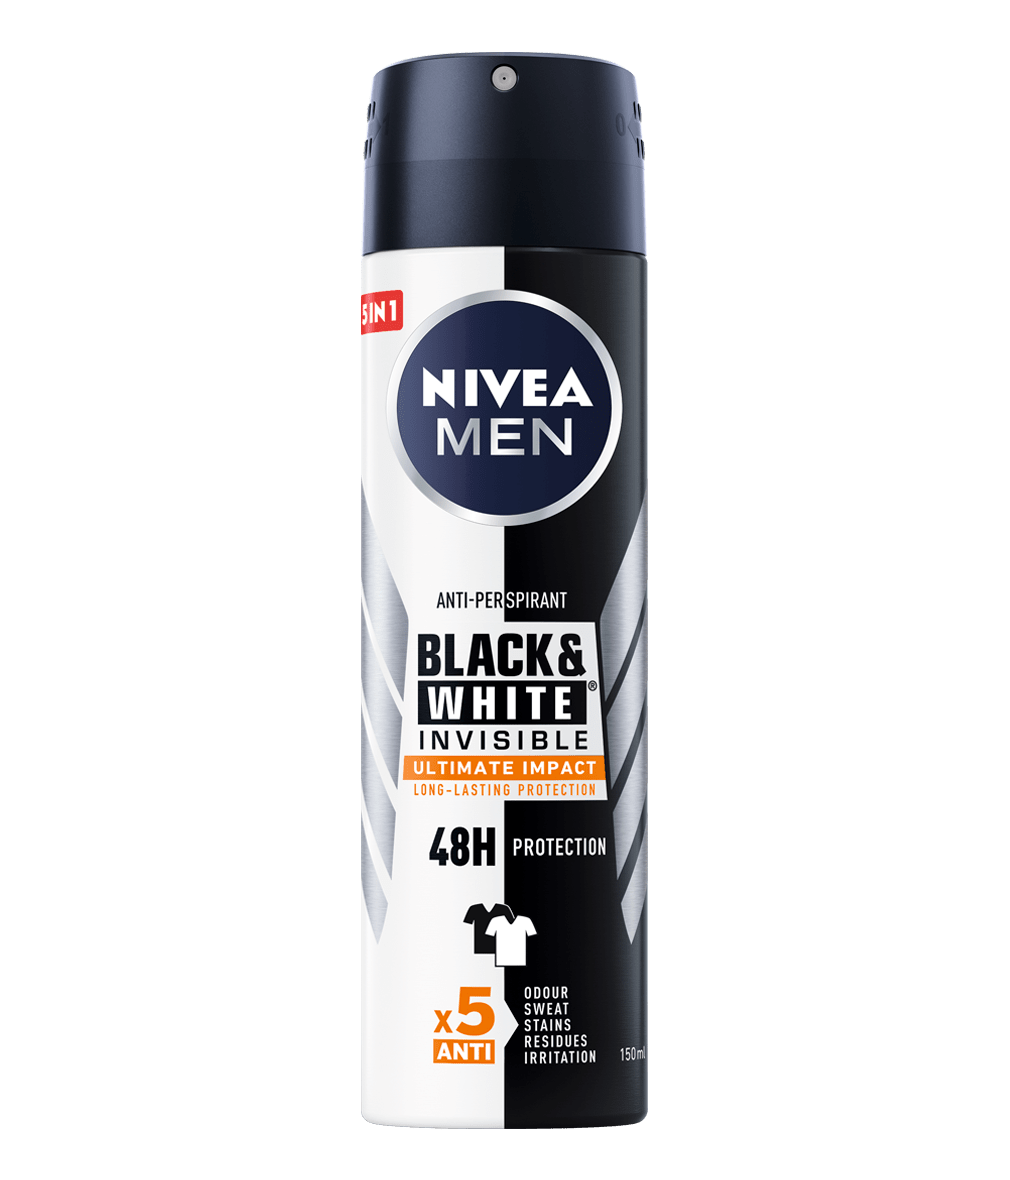 NIVEA men deo black and white ultimate impact